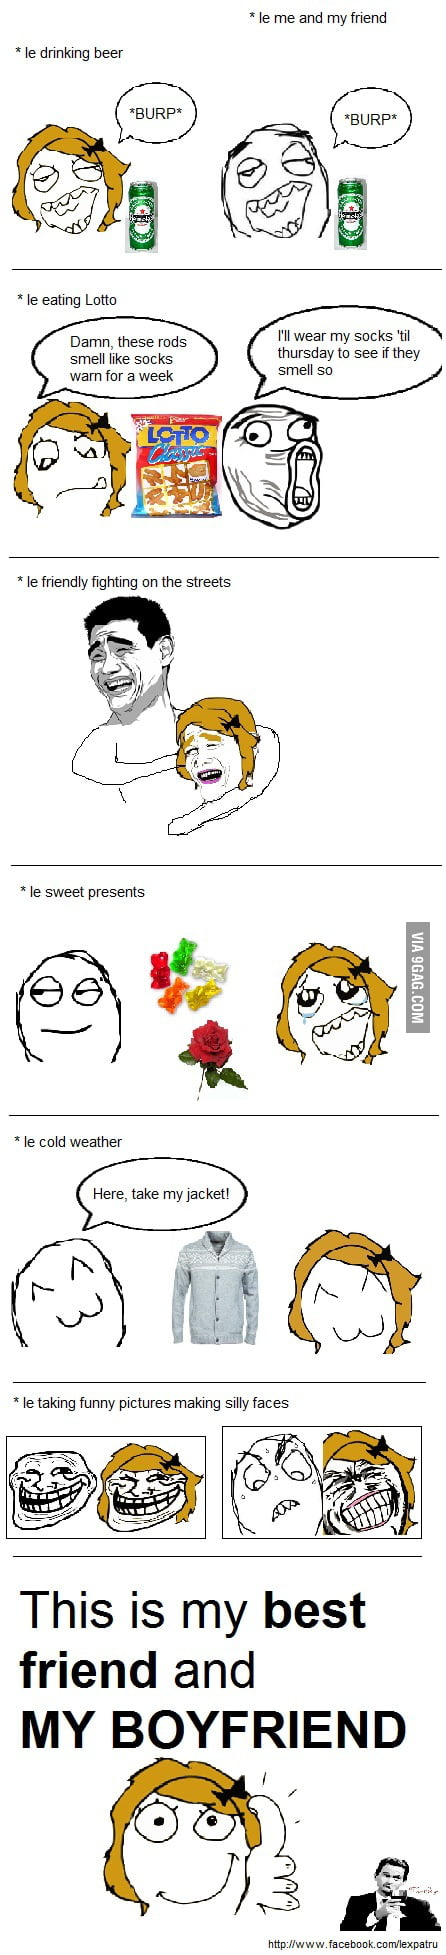 how to not get friendzoned by a girl